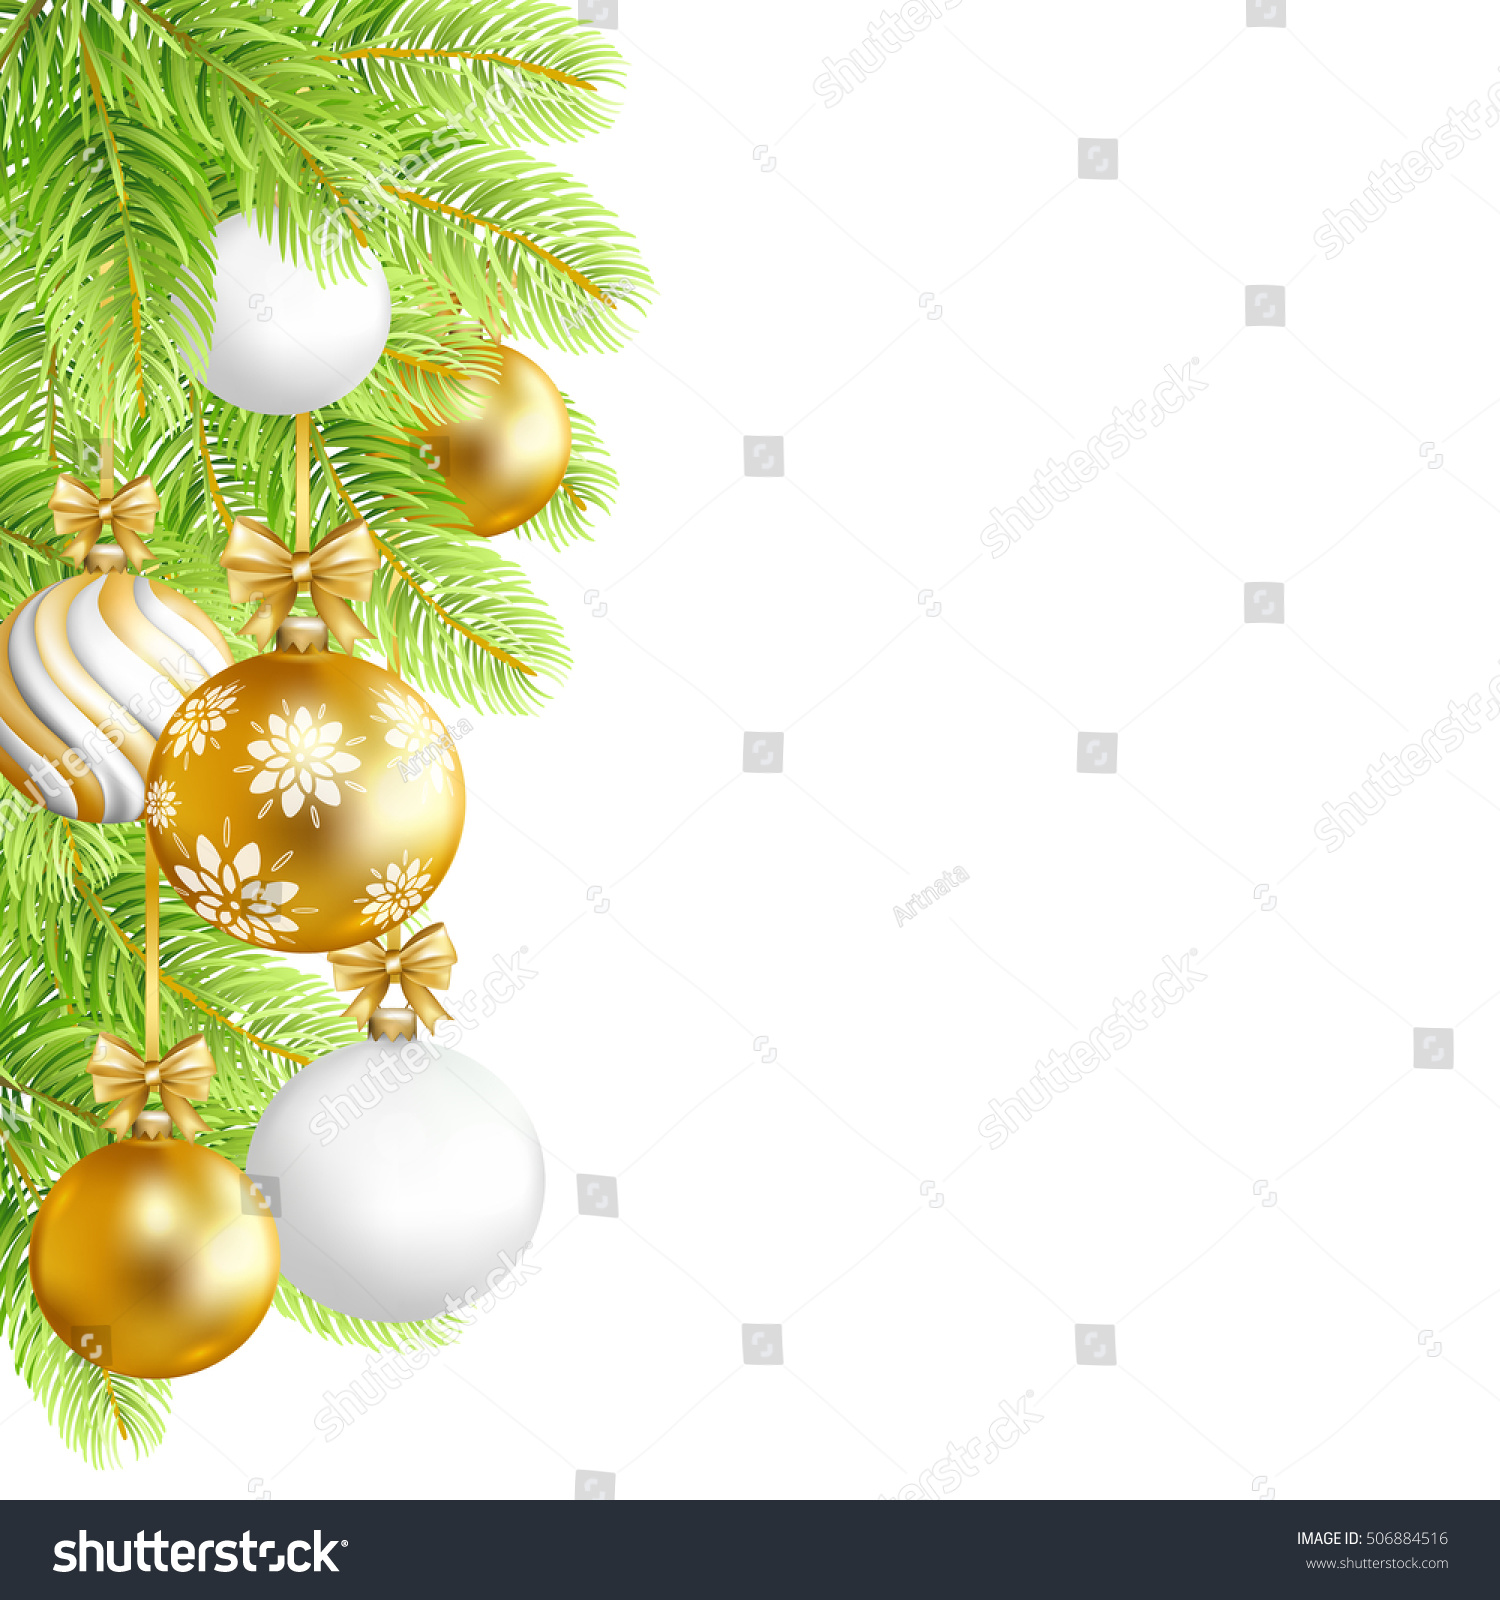 Merry Christmas Green Background Gold White Stock Vector (Royalty ...